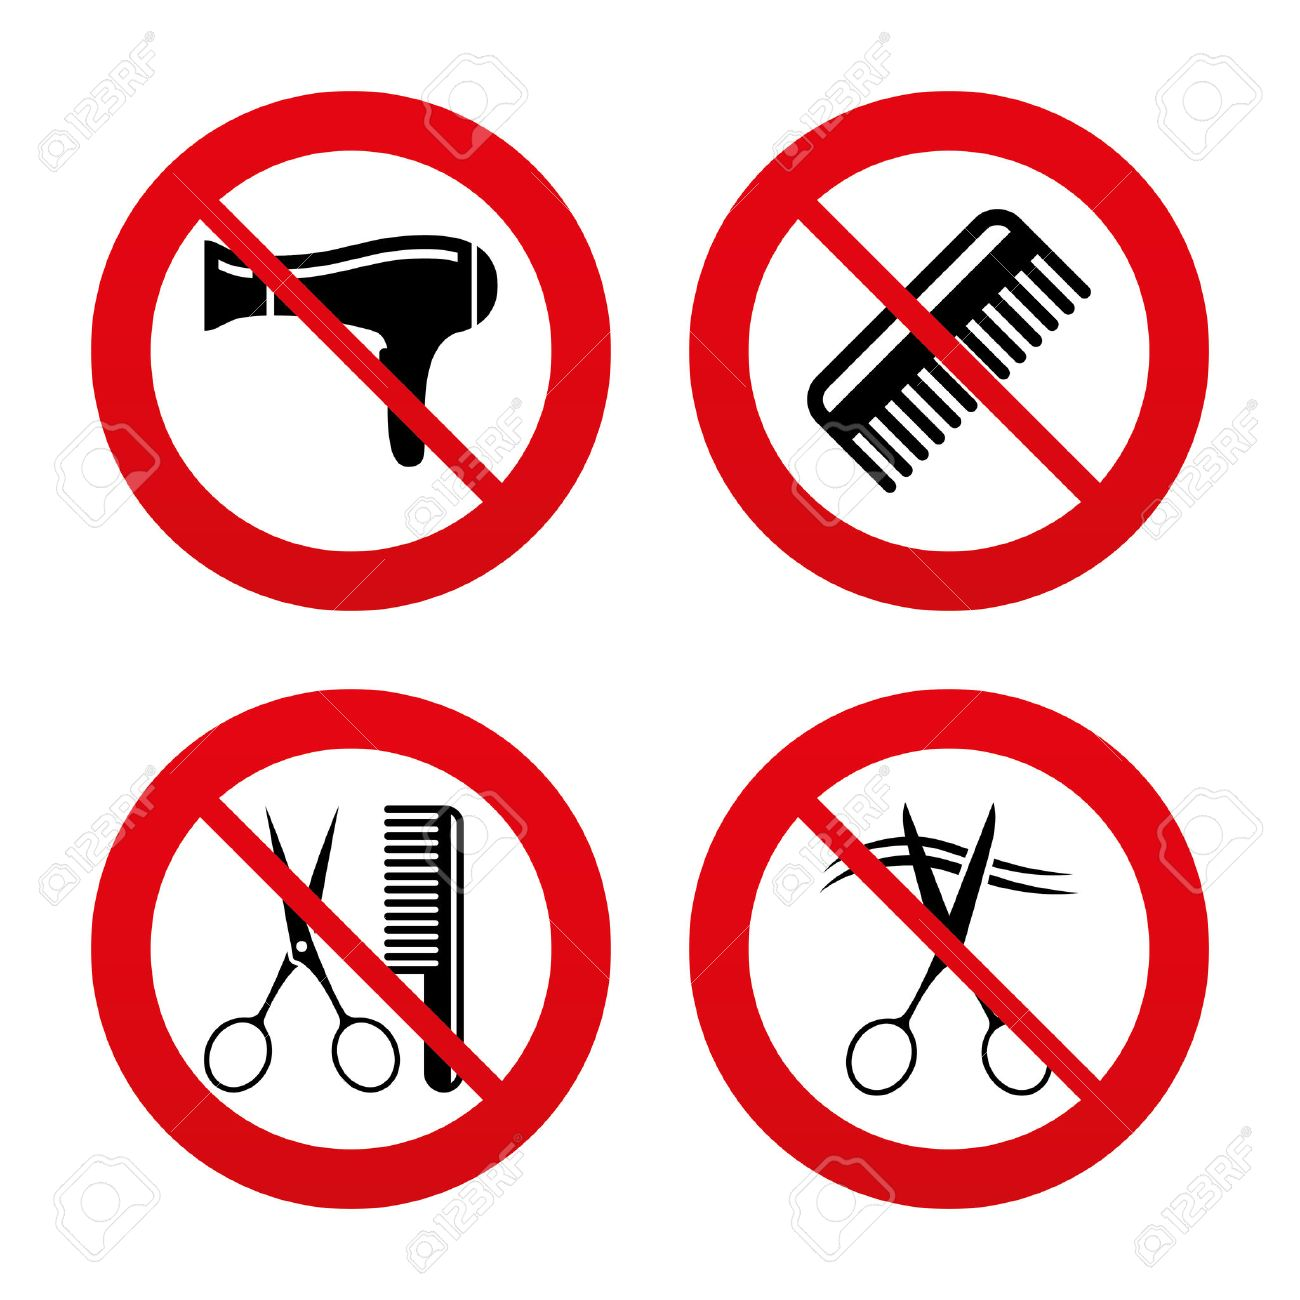 No ban or stop signs hairdresser icons scissors cut hair symbol no ban or stop signs hairdresser icons scissors cut hair symbol comb biocorpaavc